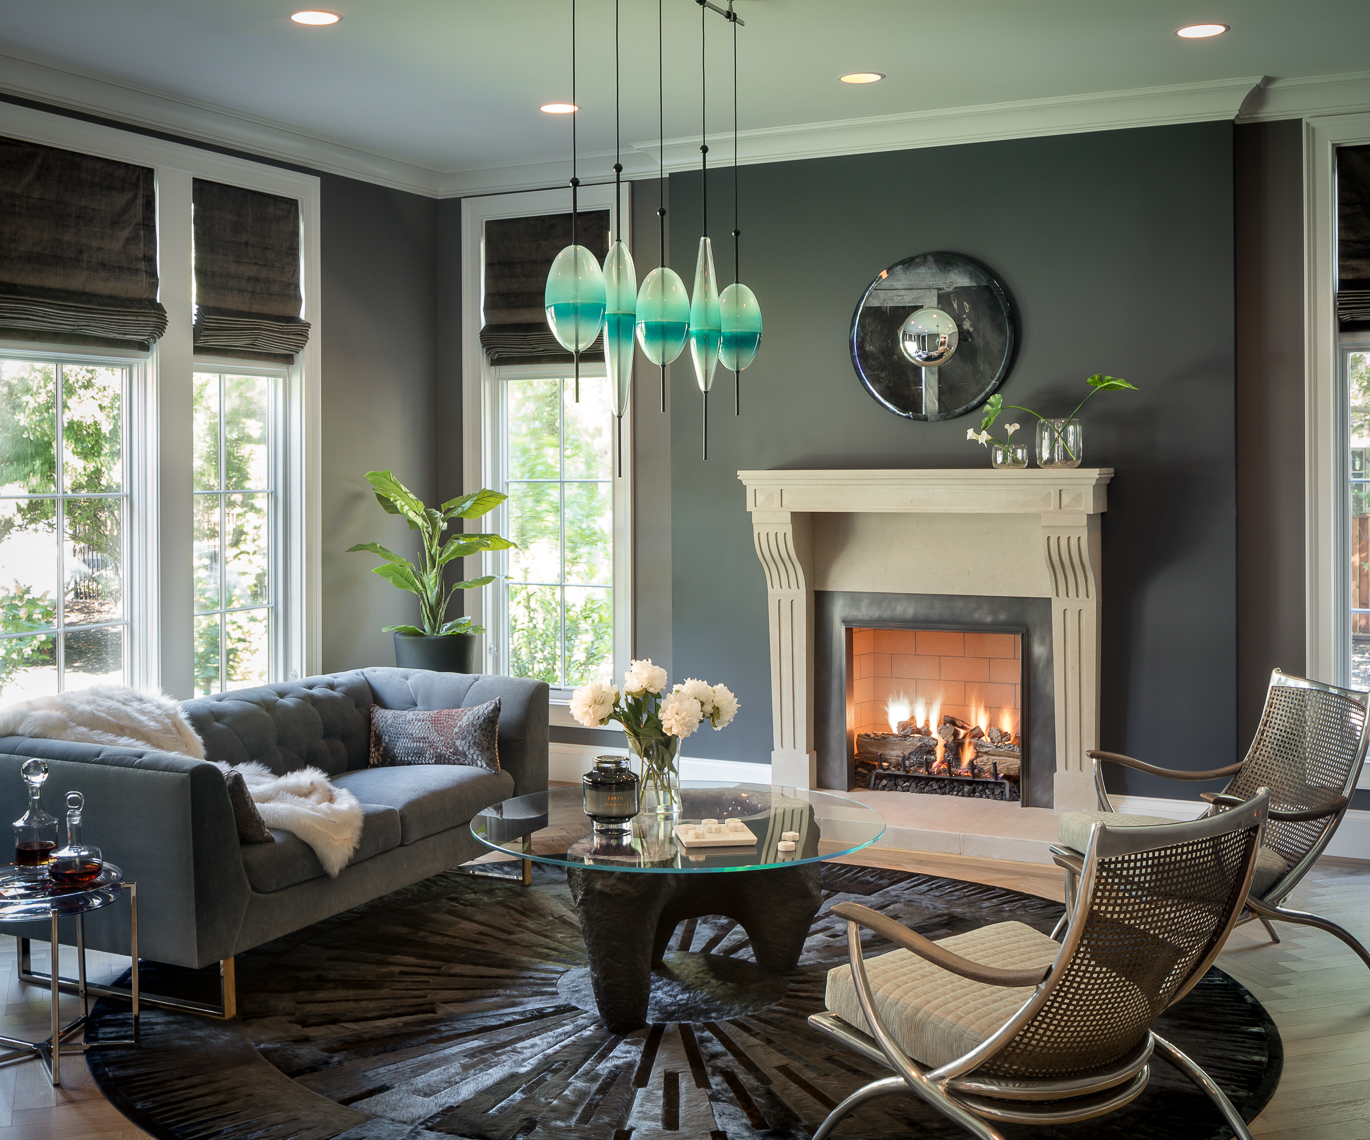 Architectural & Interiors Photographer - Bayon Design Studio Gray Living Room